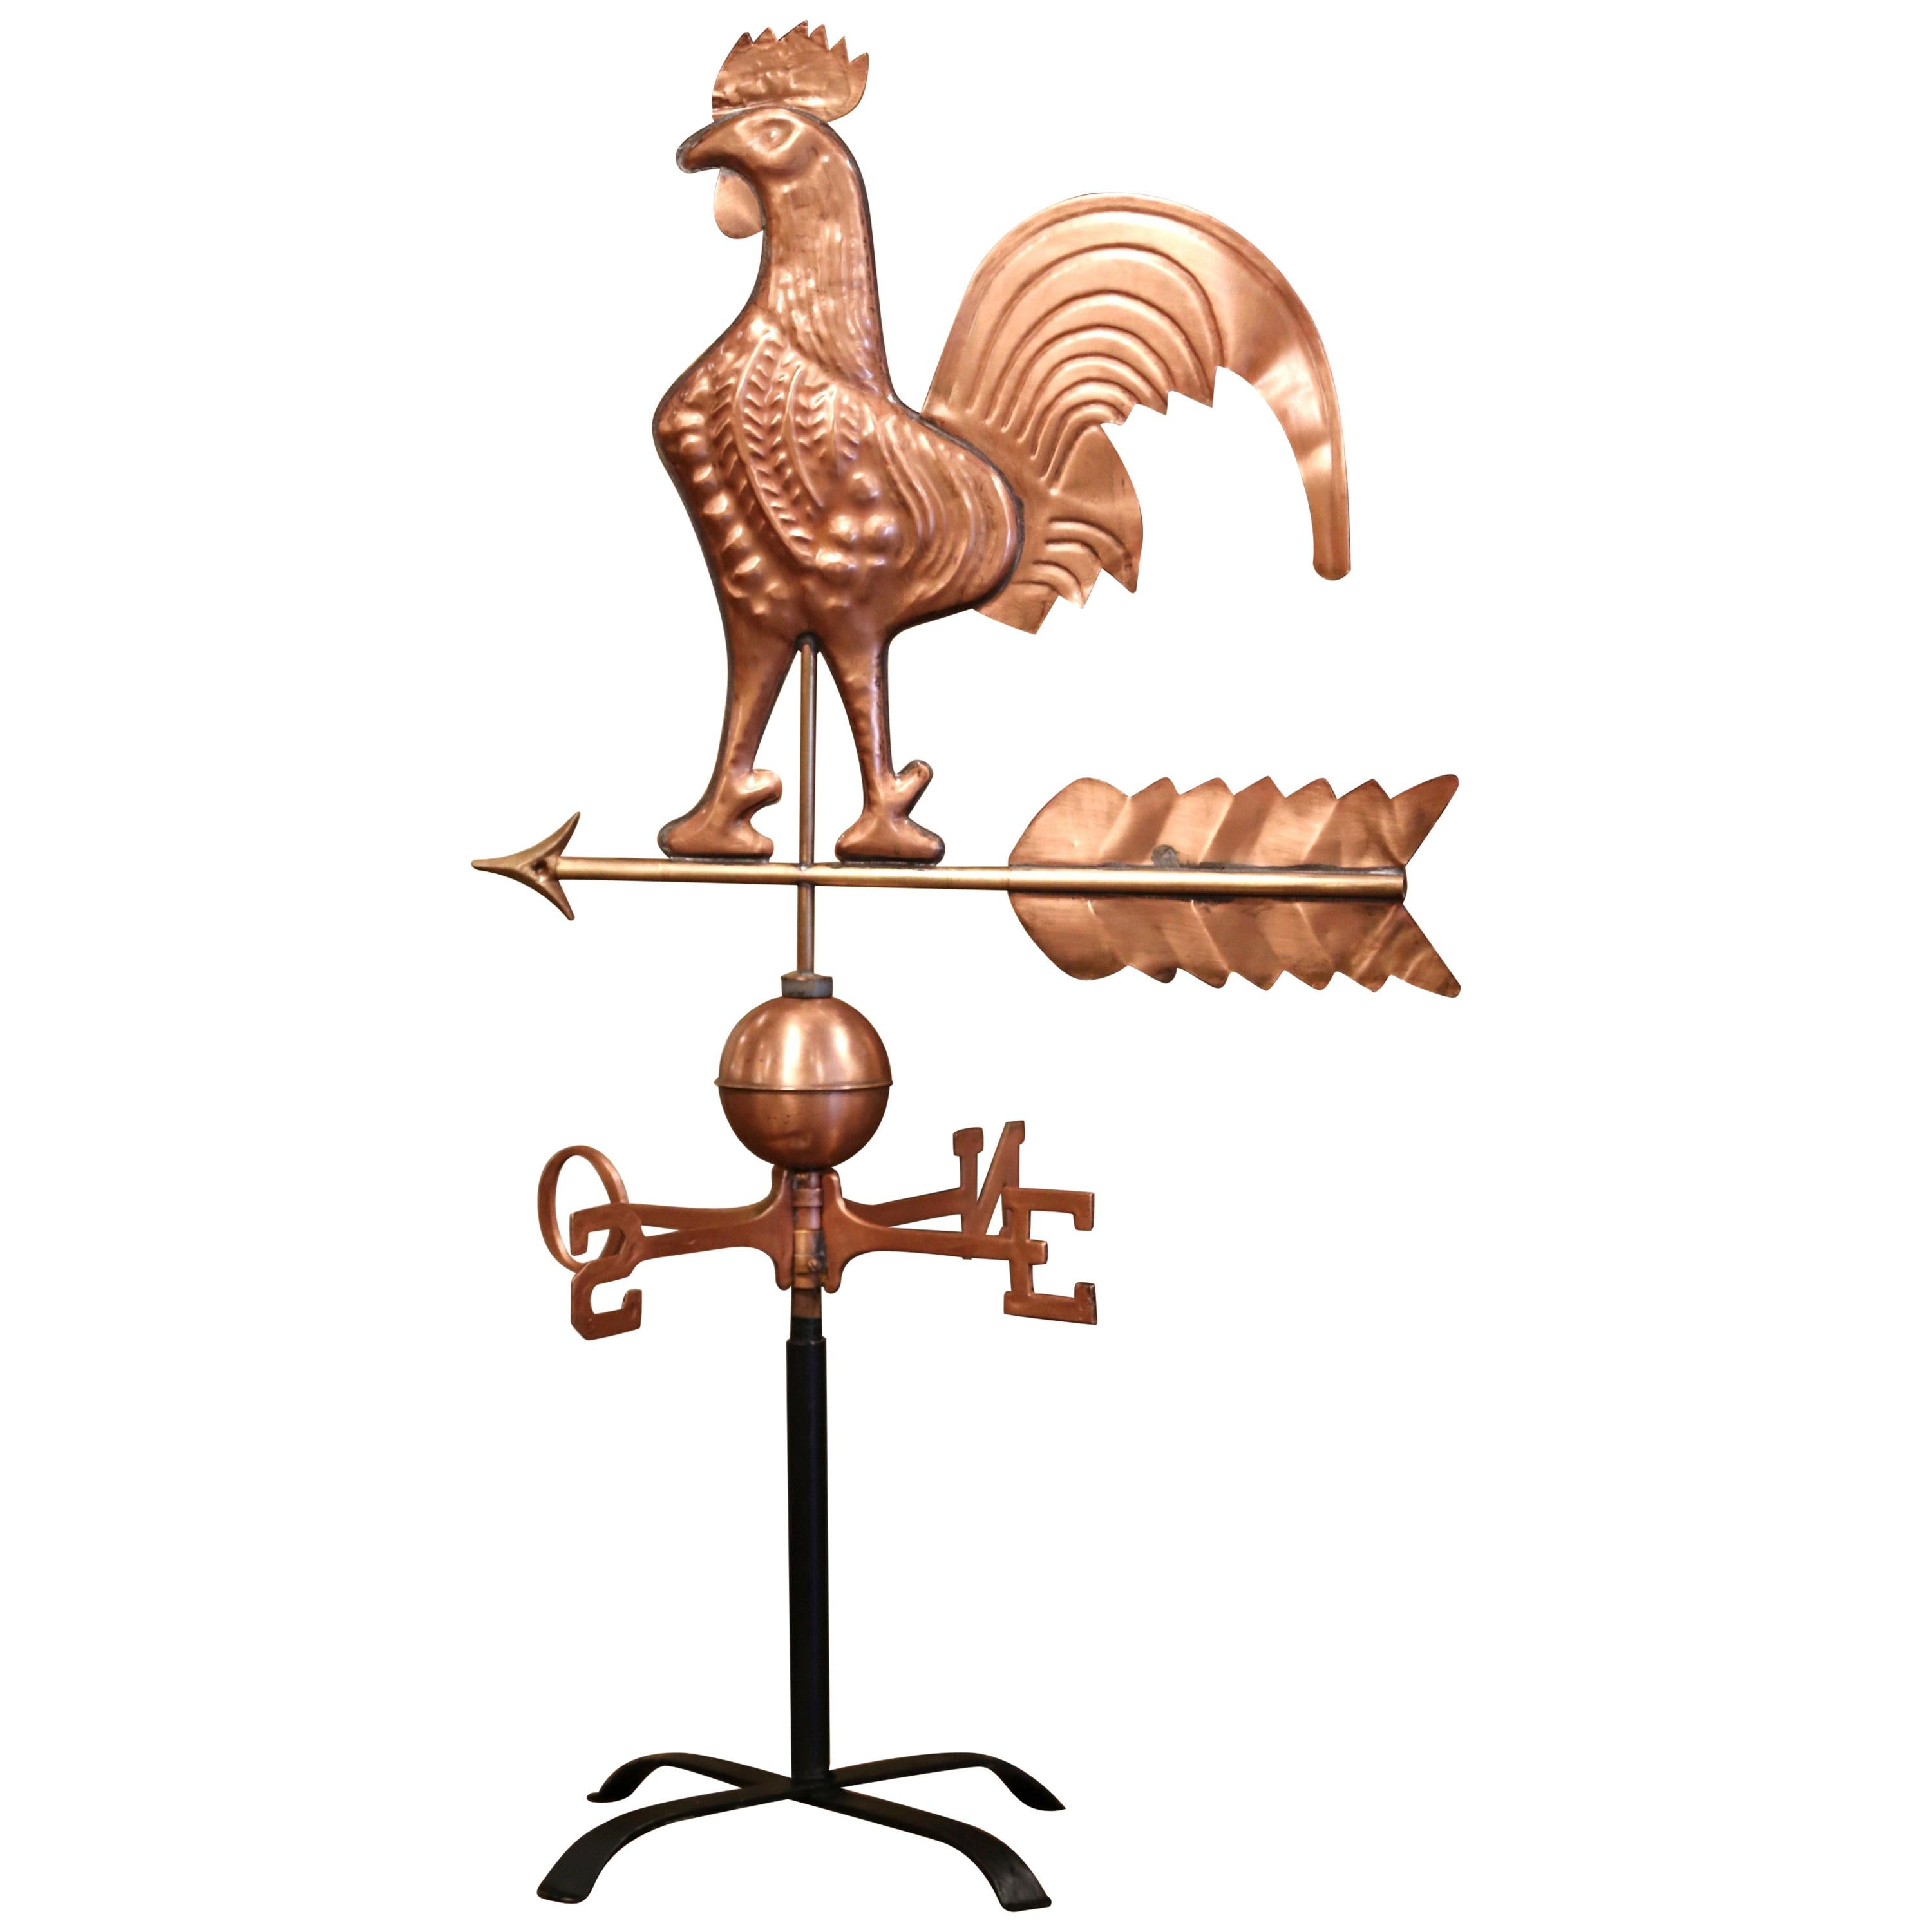 19th Century French Patinated Copper Rooster Weather Vane with Cardinal Points